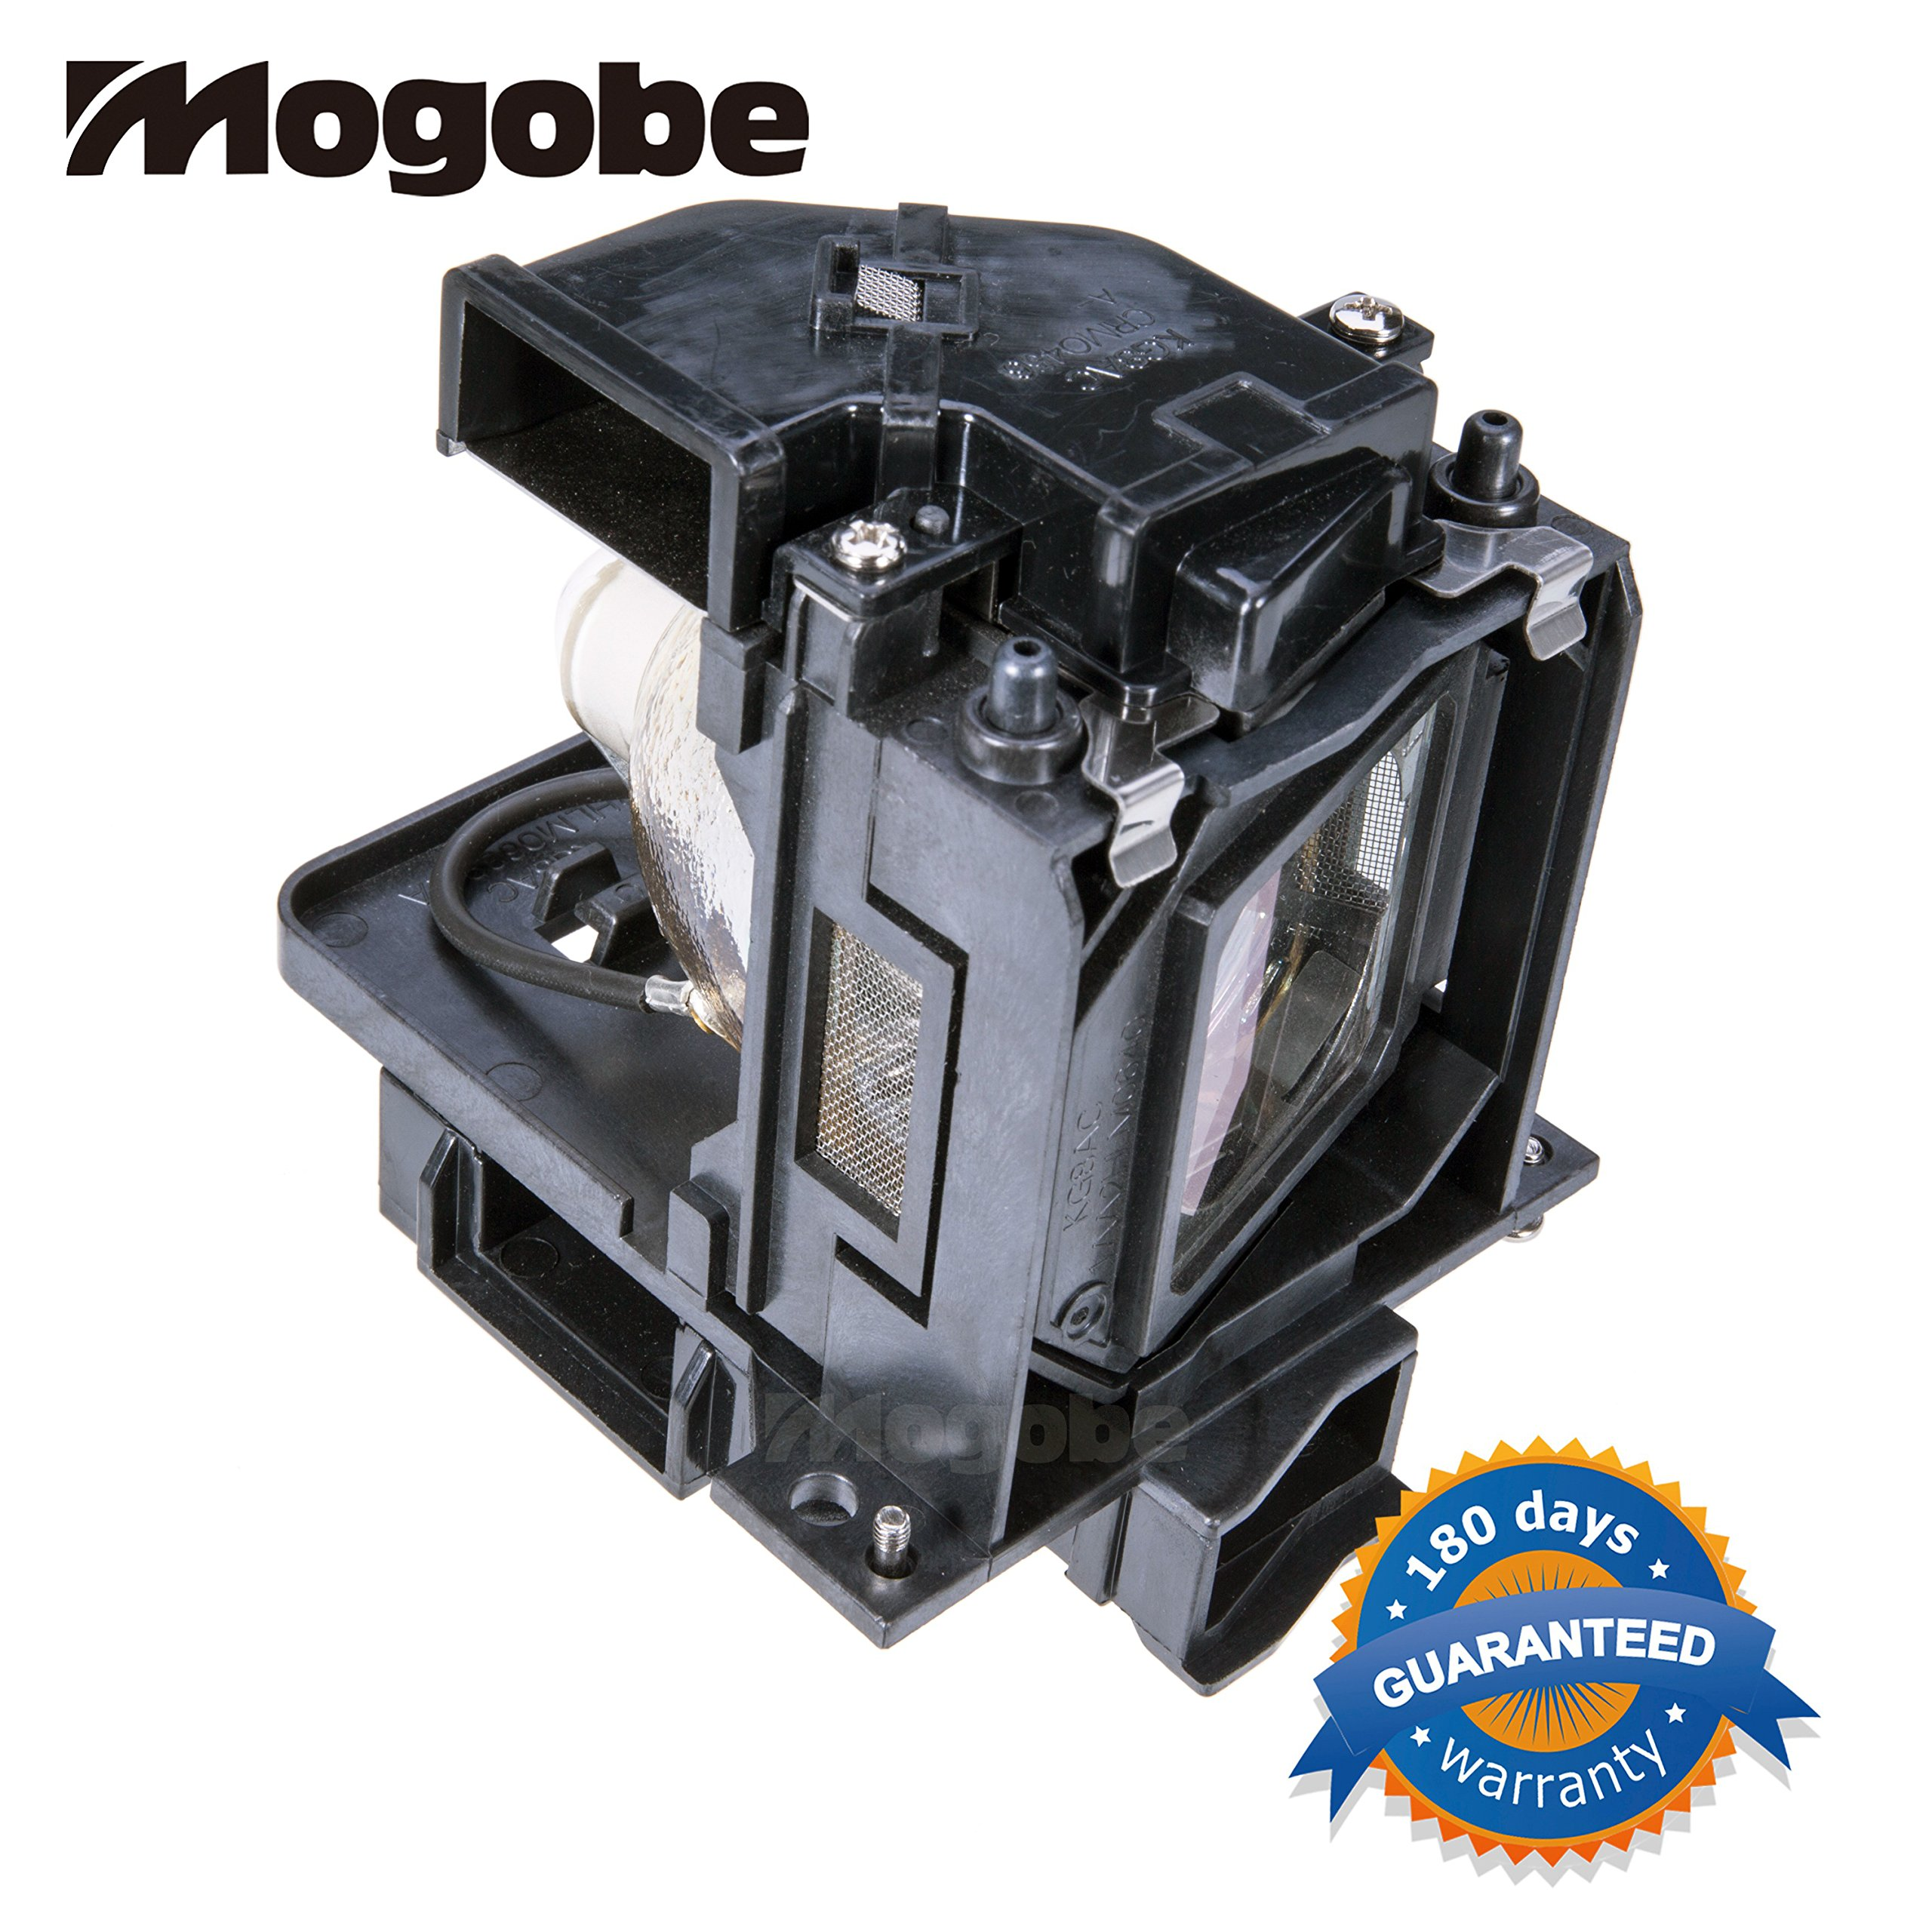 For Replacement Projector Lamp In Housing Fit SANYO PDG-DWL2500 PDG-DXL2000 PDG-DXL2500 POA-LMP143 by Mogobe